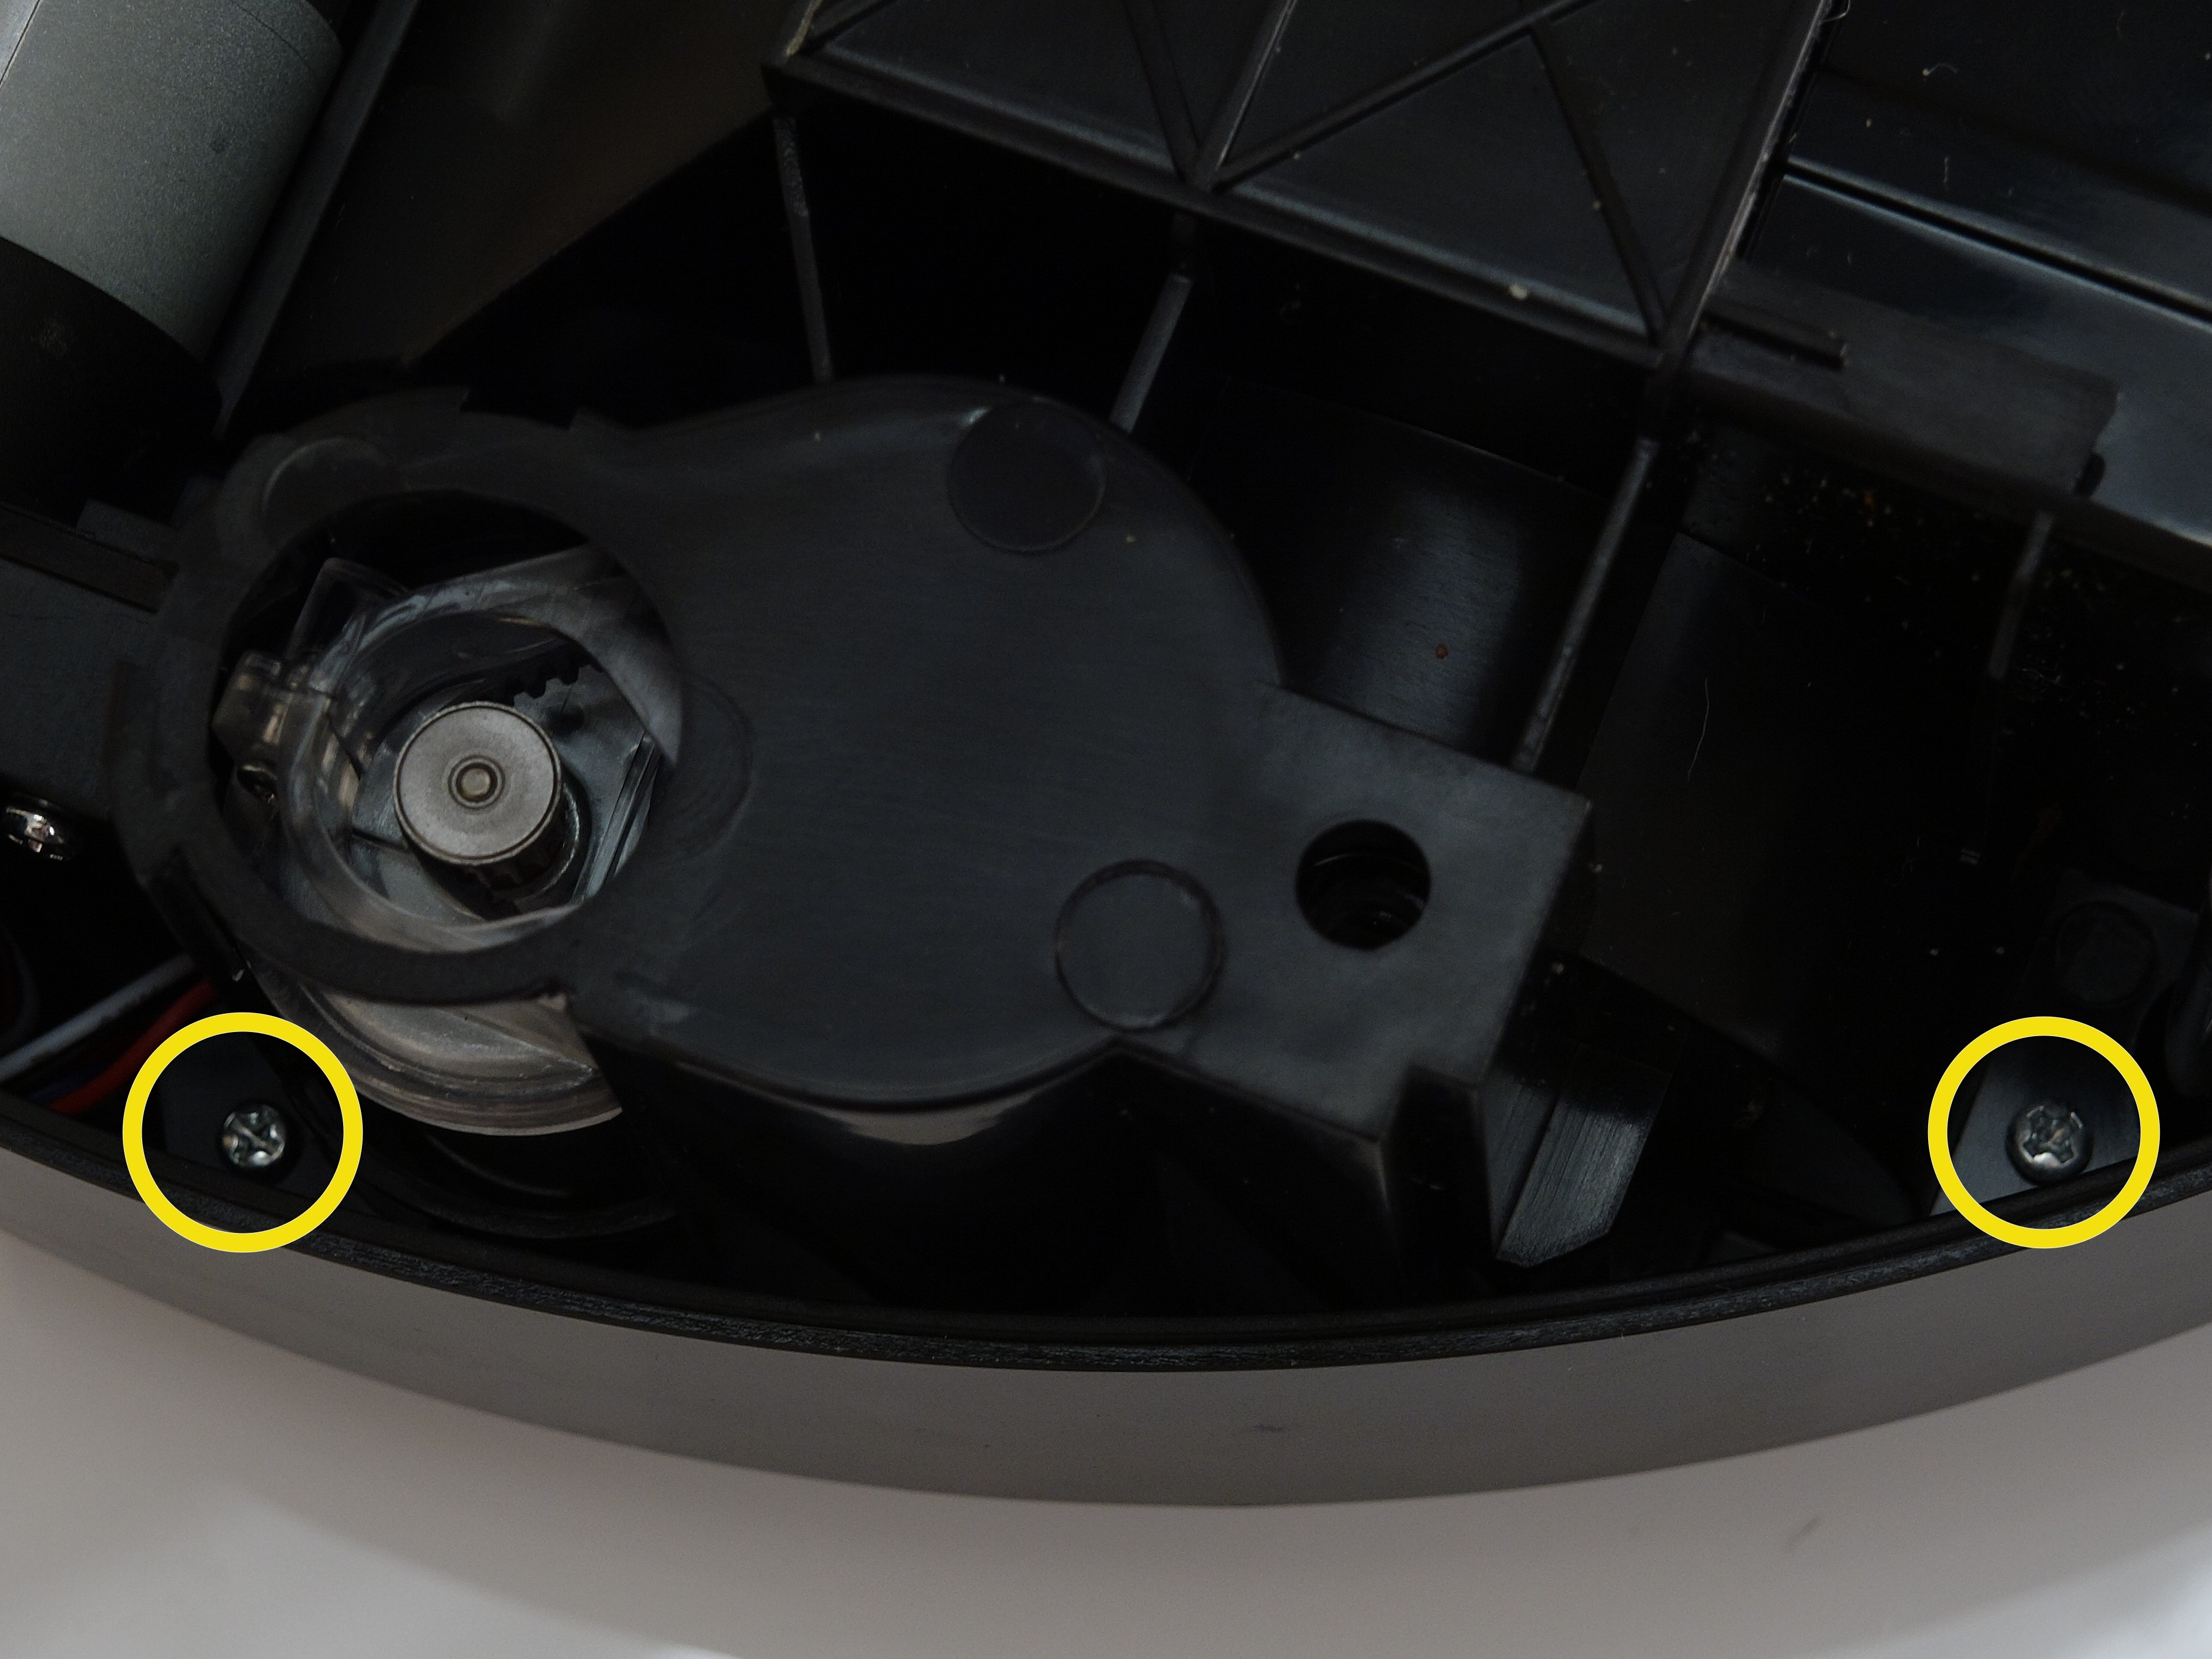 Picture of Secure the Wheel Cover on BObsweep